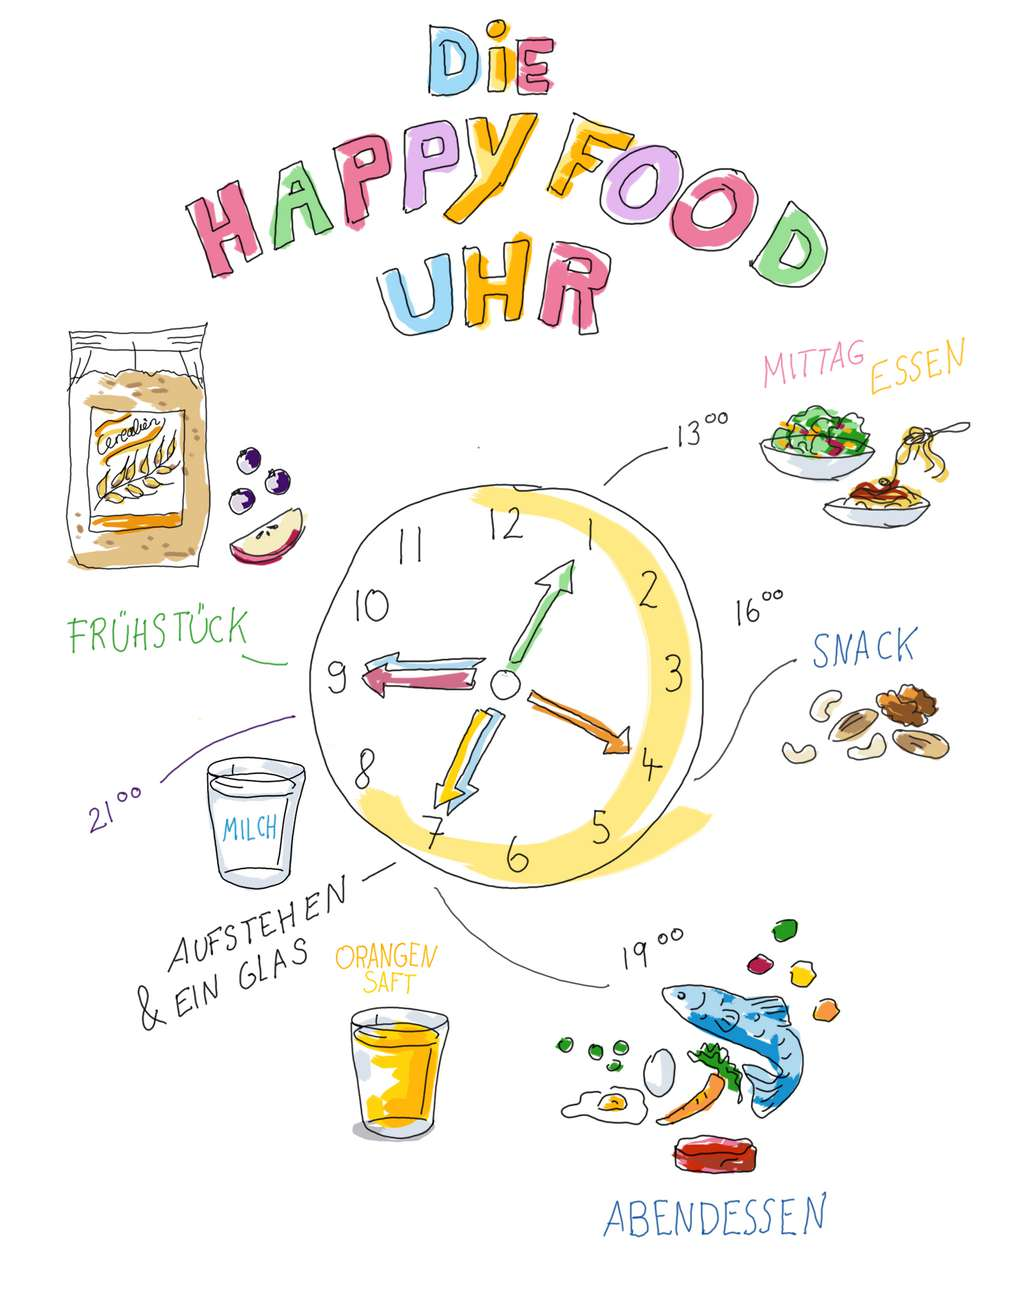 Happy Food Uhr